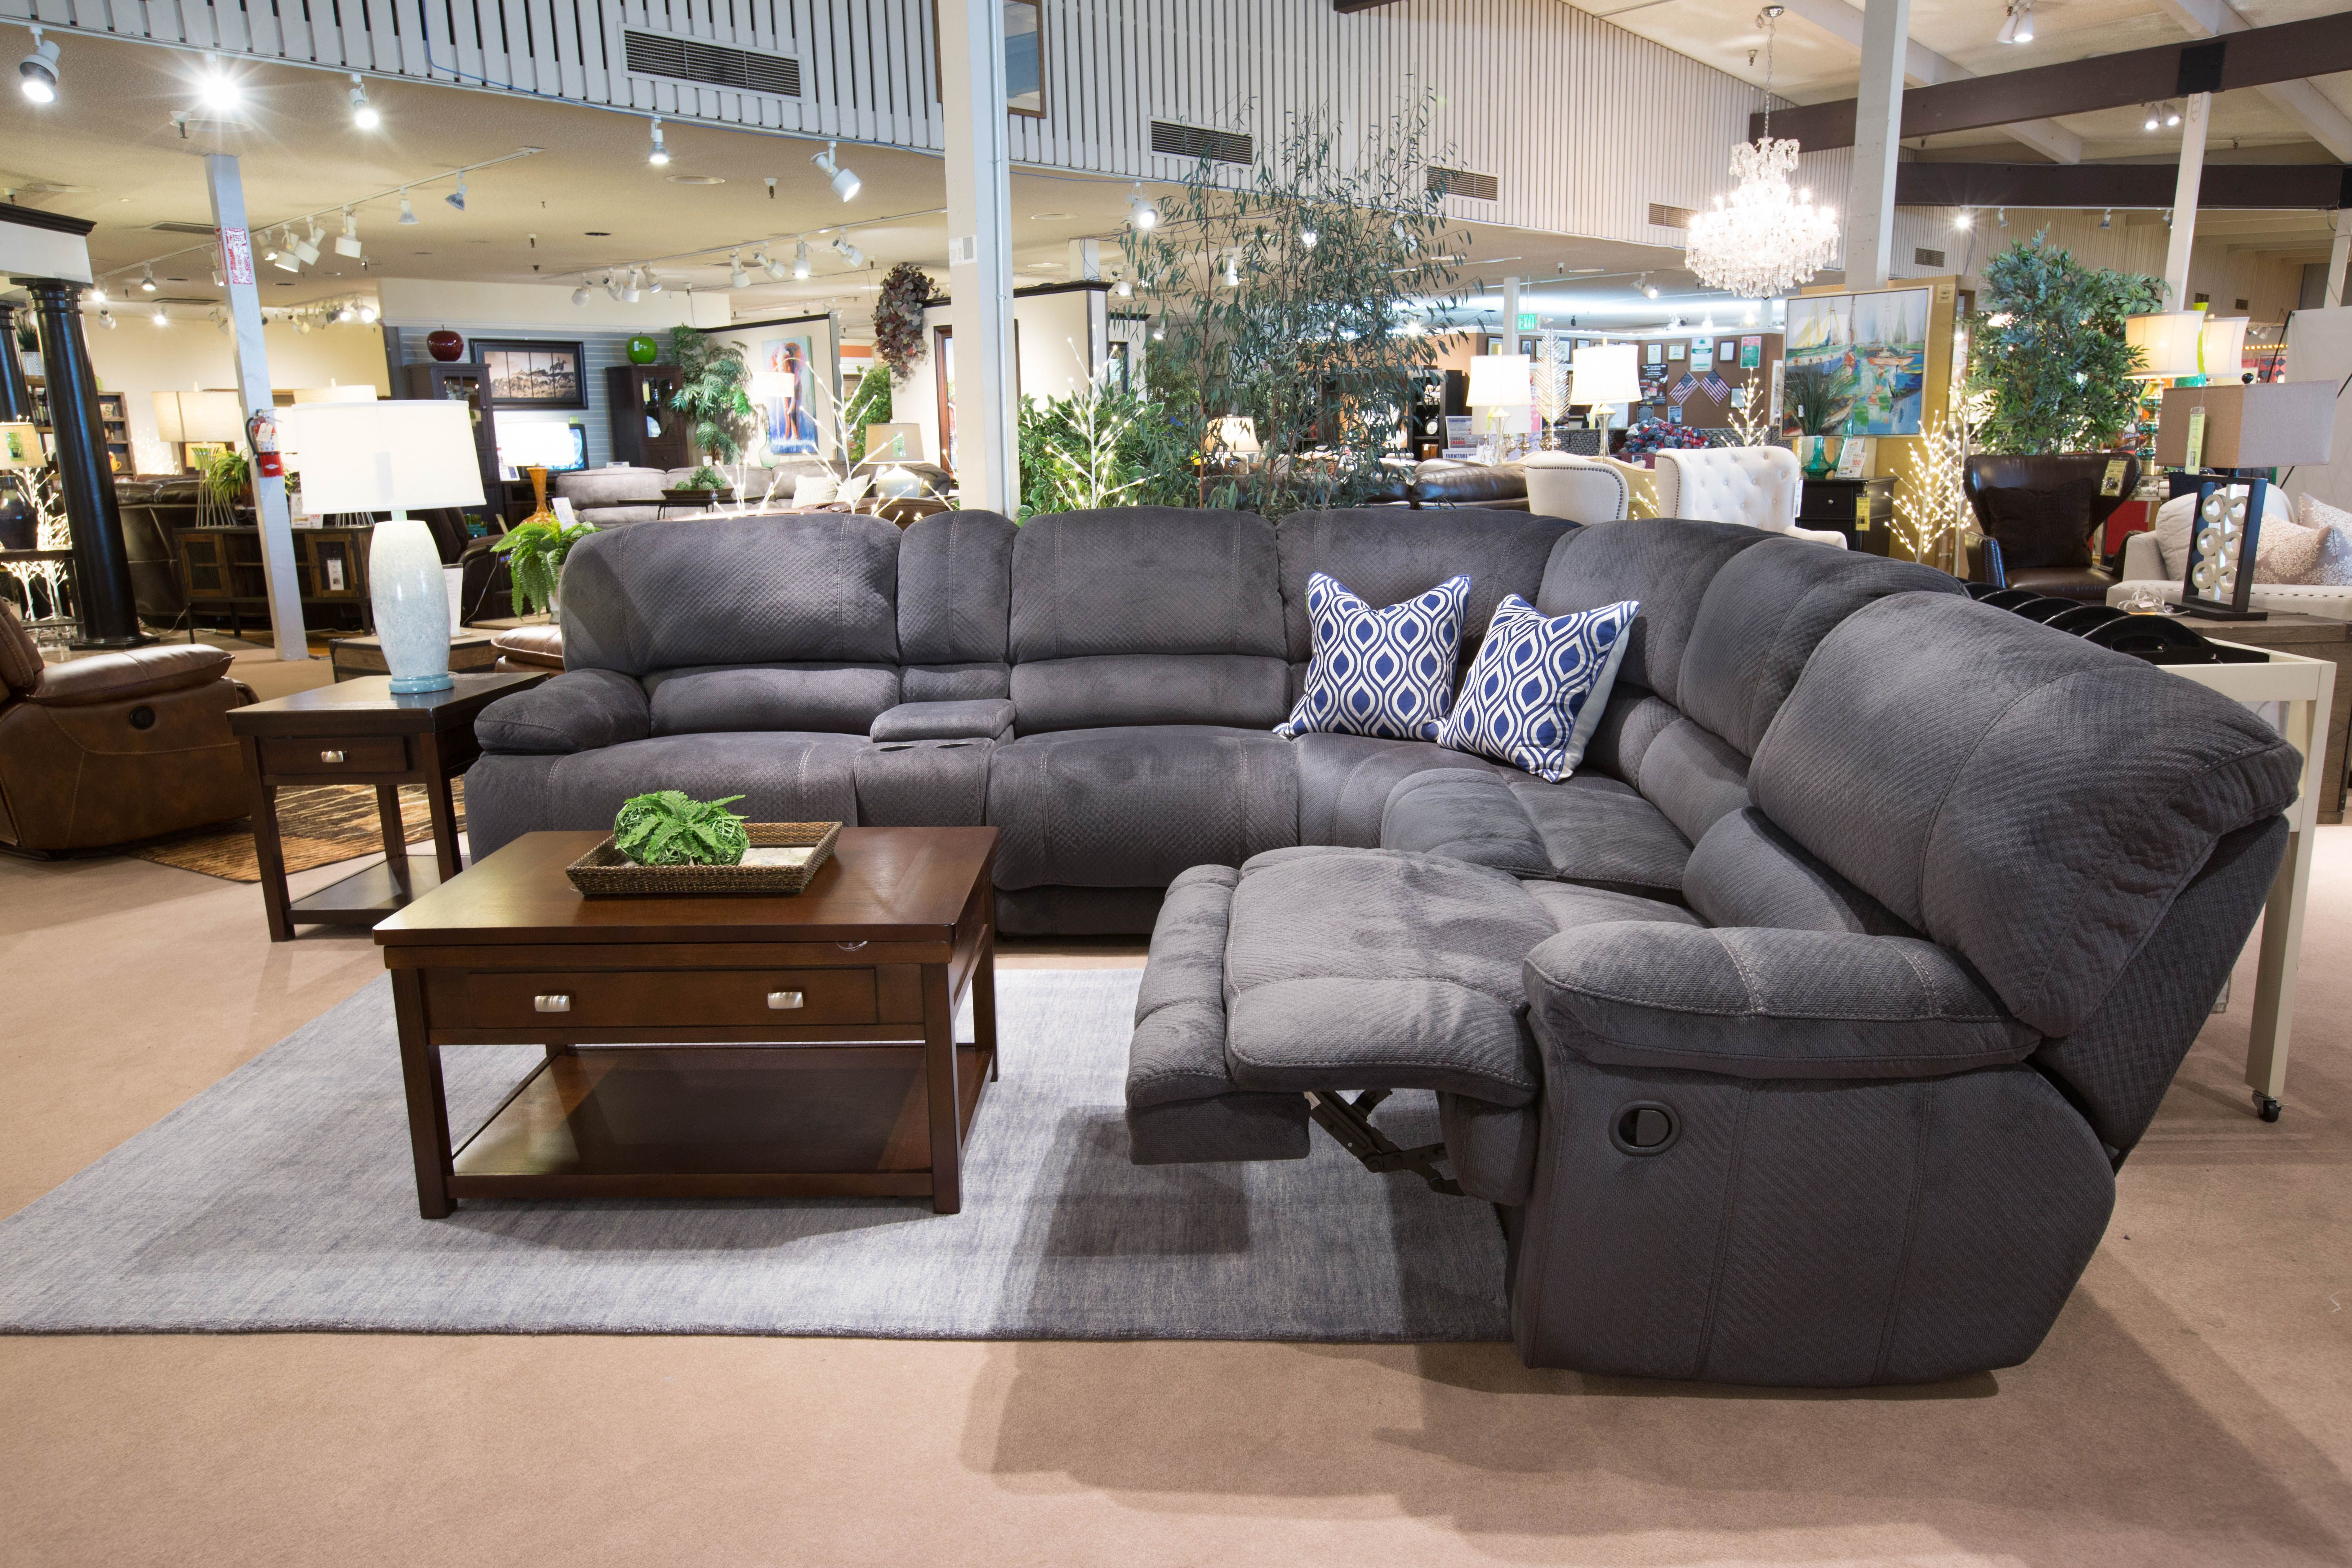 Kosovo Collection Plush Charcoal Chenille Fabric High Performance Upholstery The Kosovo Co Reclining Sofa Living Room Living Room Pub Sofas For Small Spaces